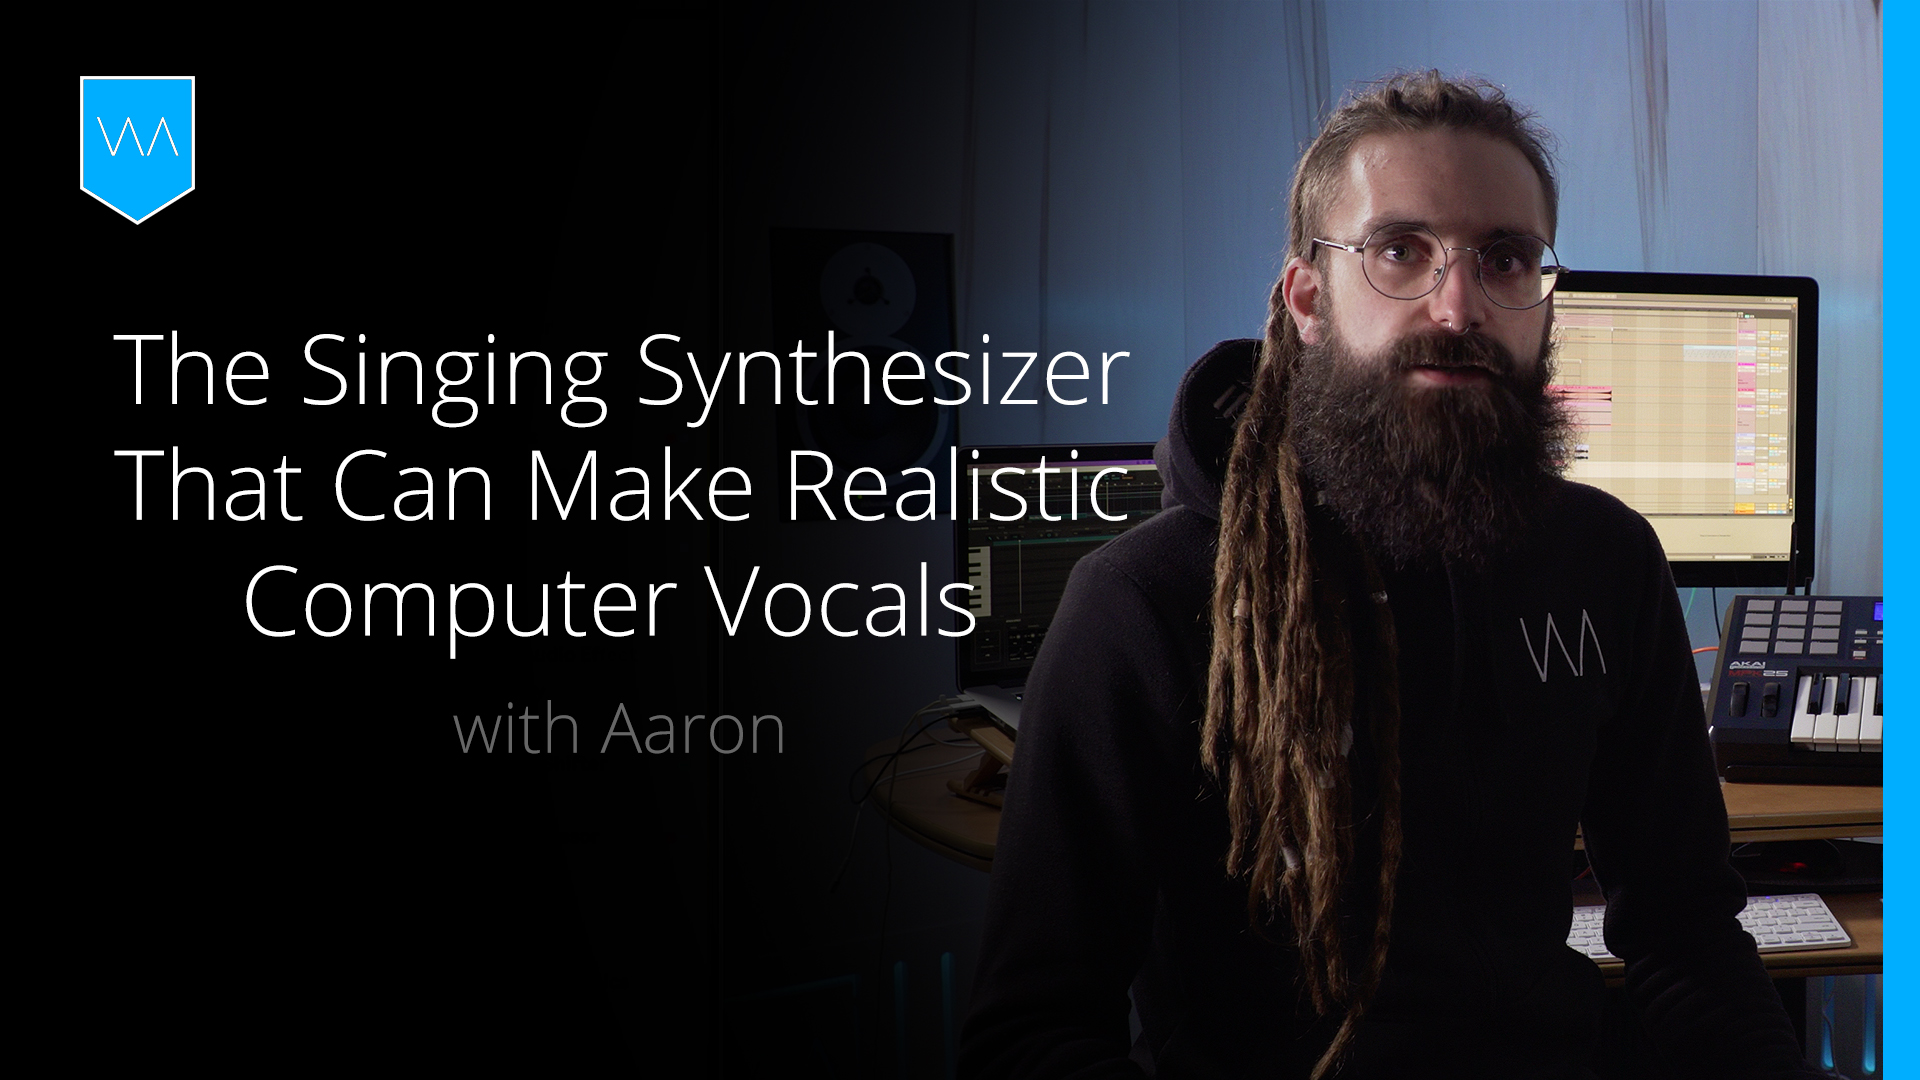 The Singing Synthesizer That Can Make Realistic Computer Vocals